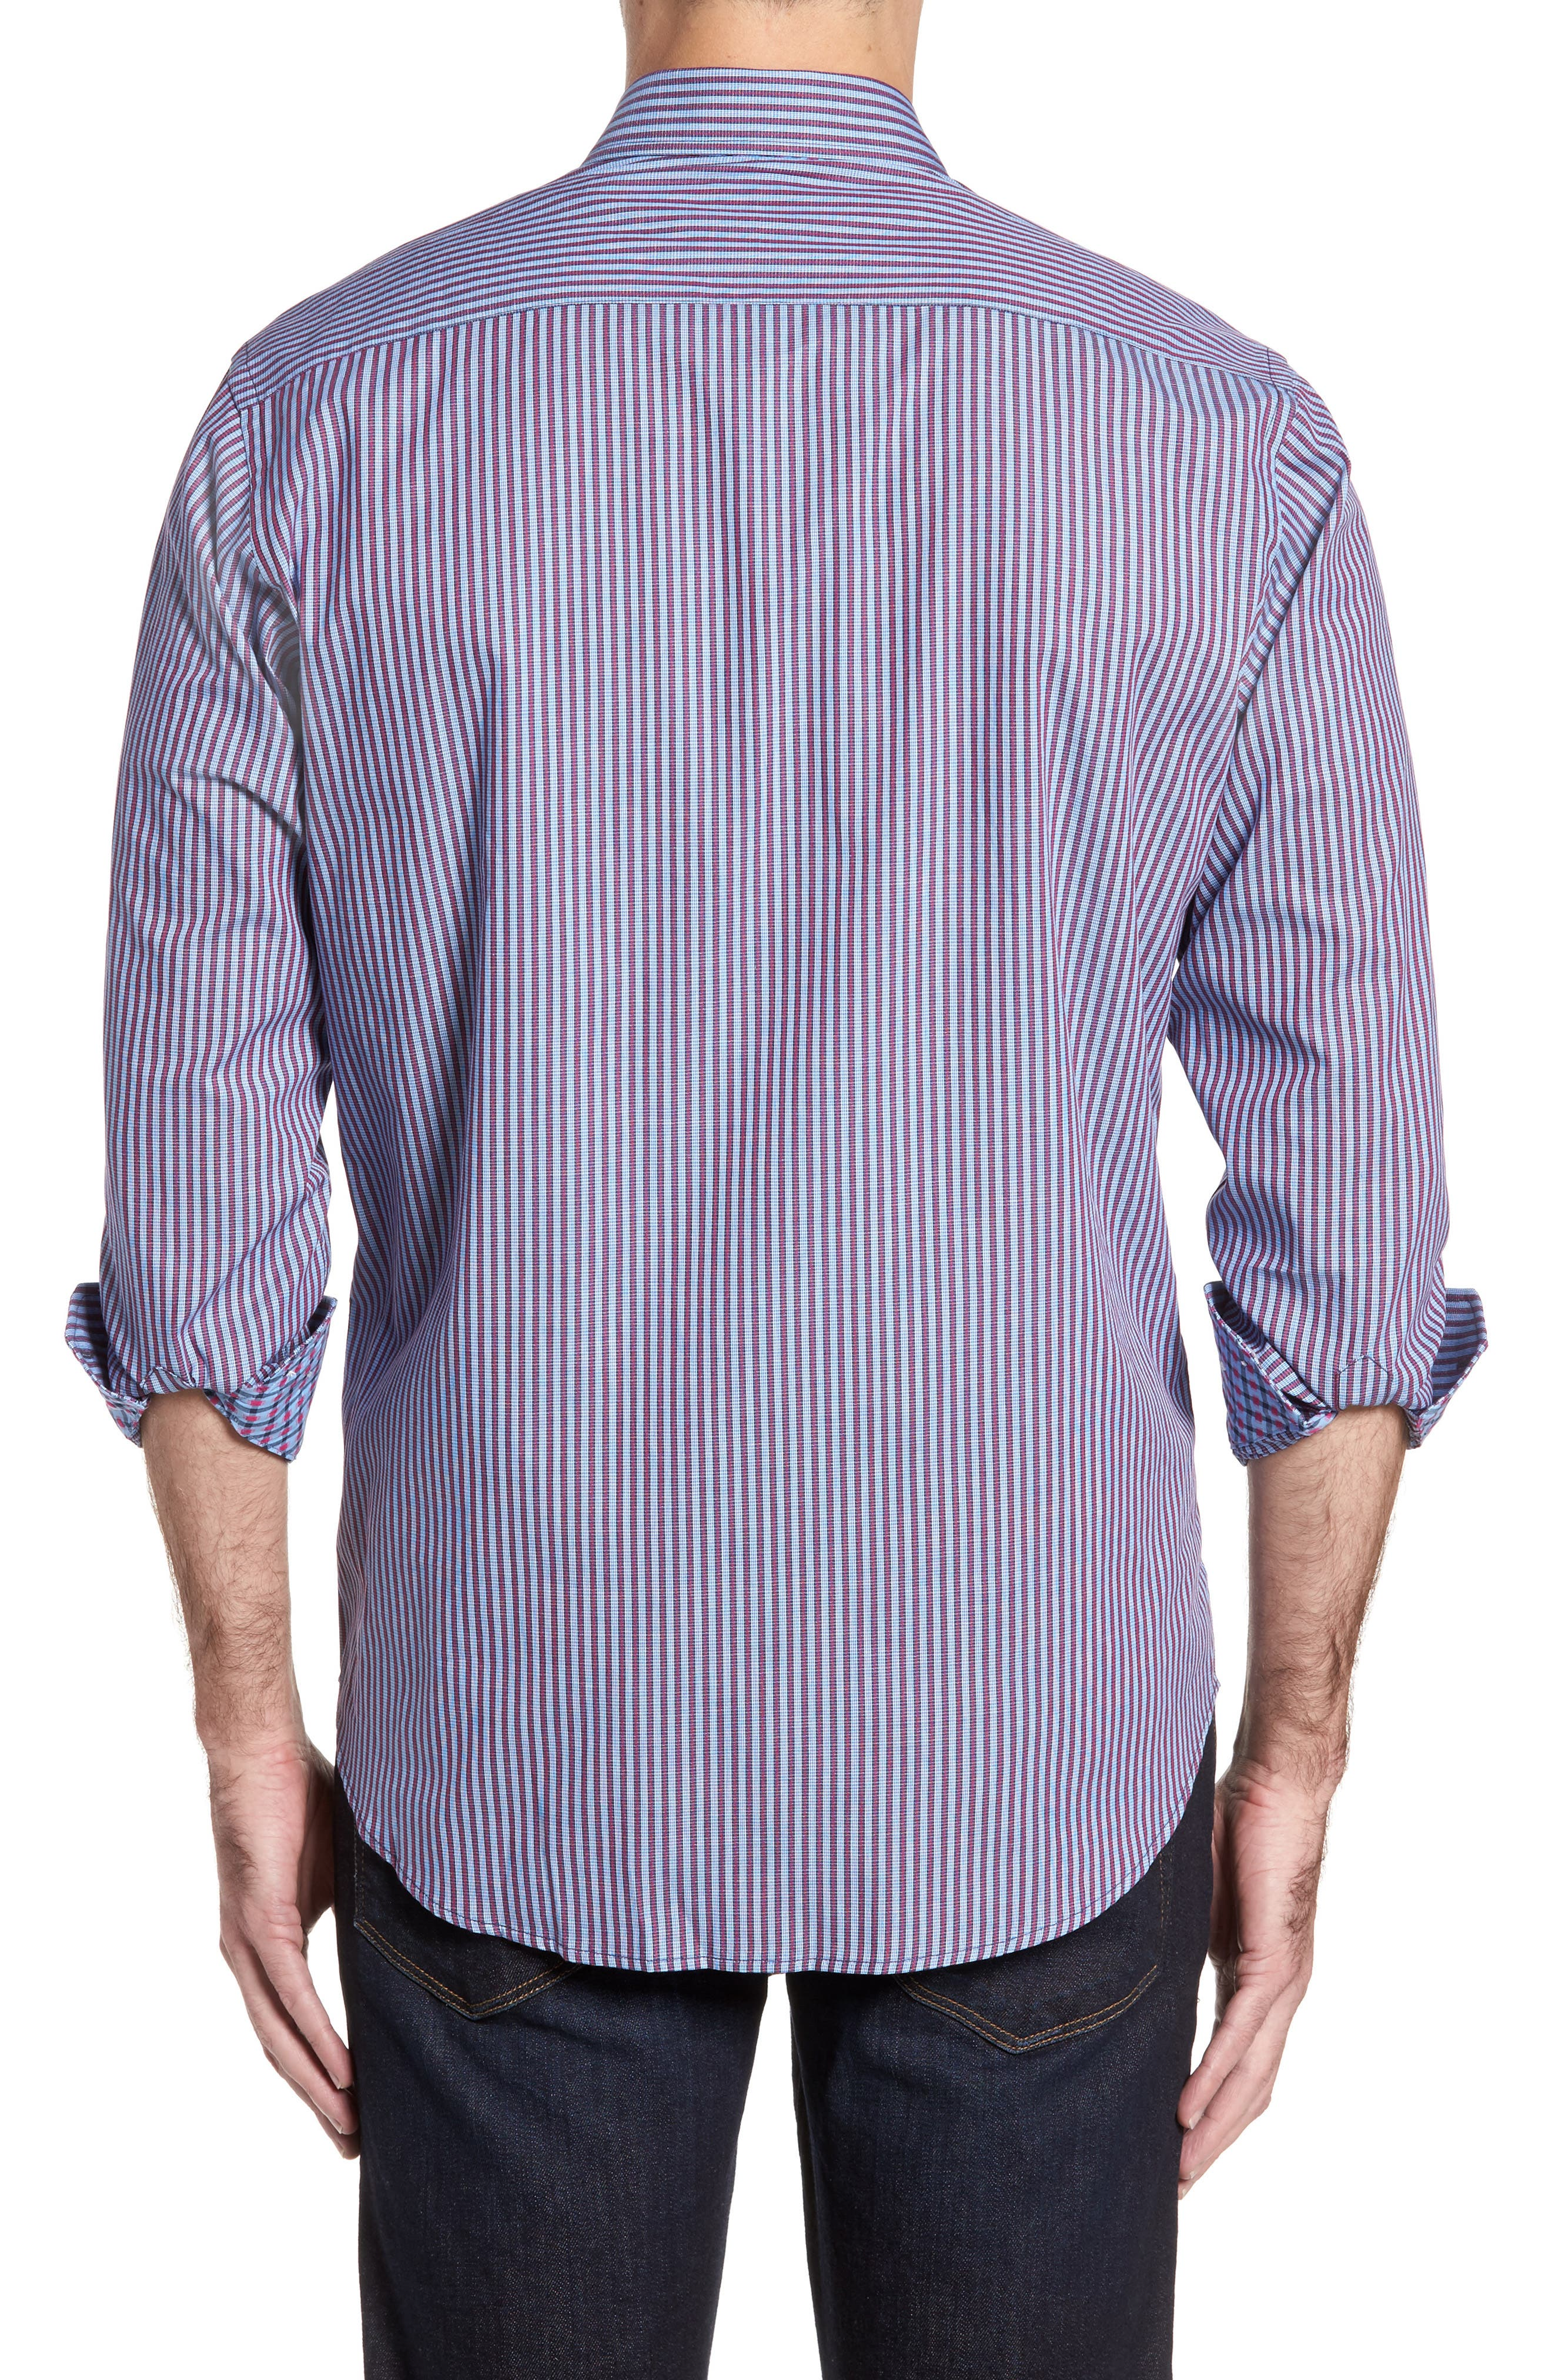 Brownfields Striped Sport Shirt,                             Alternate thumbnail 2, color,                             617